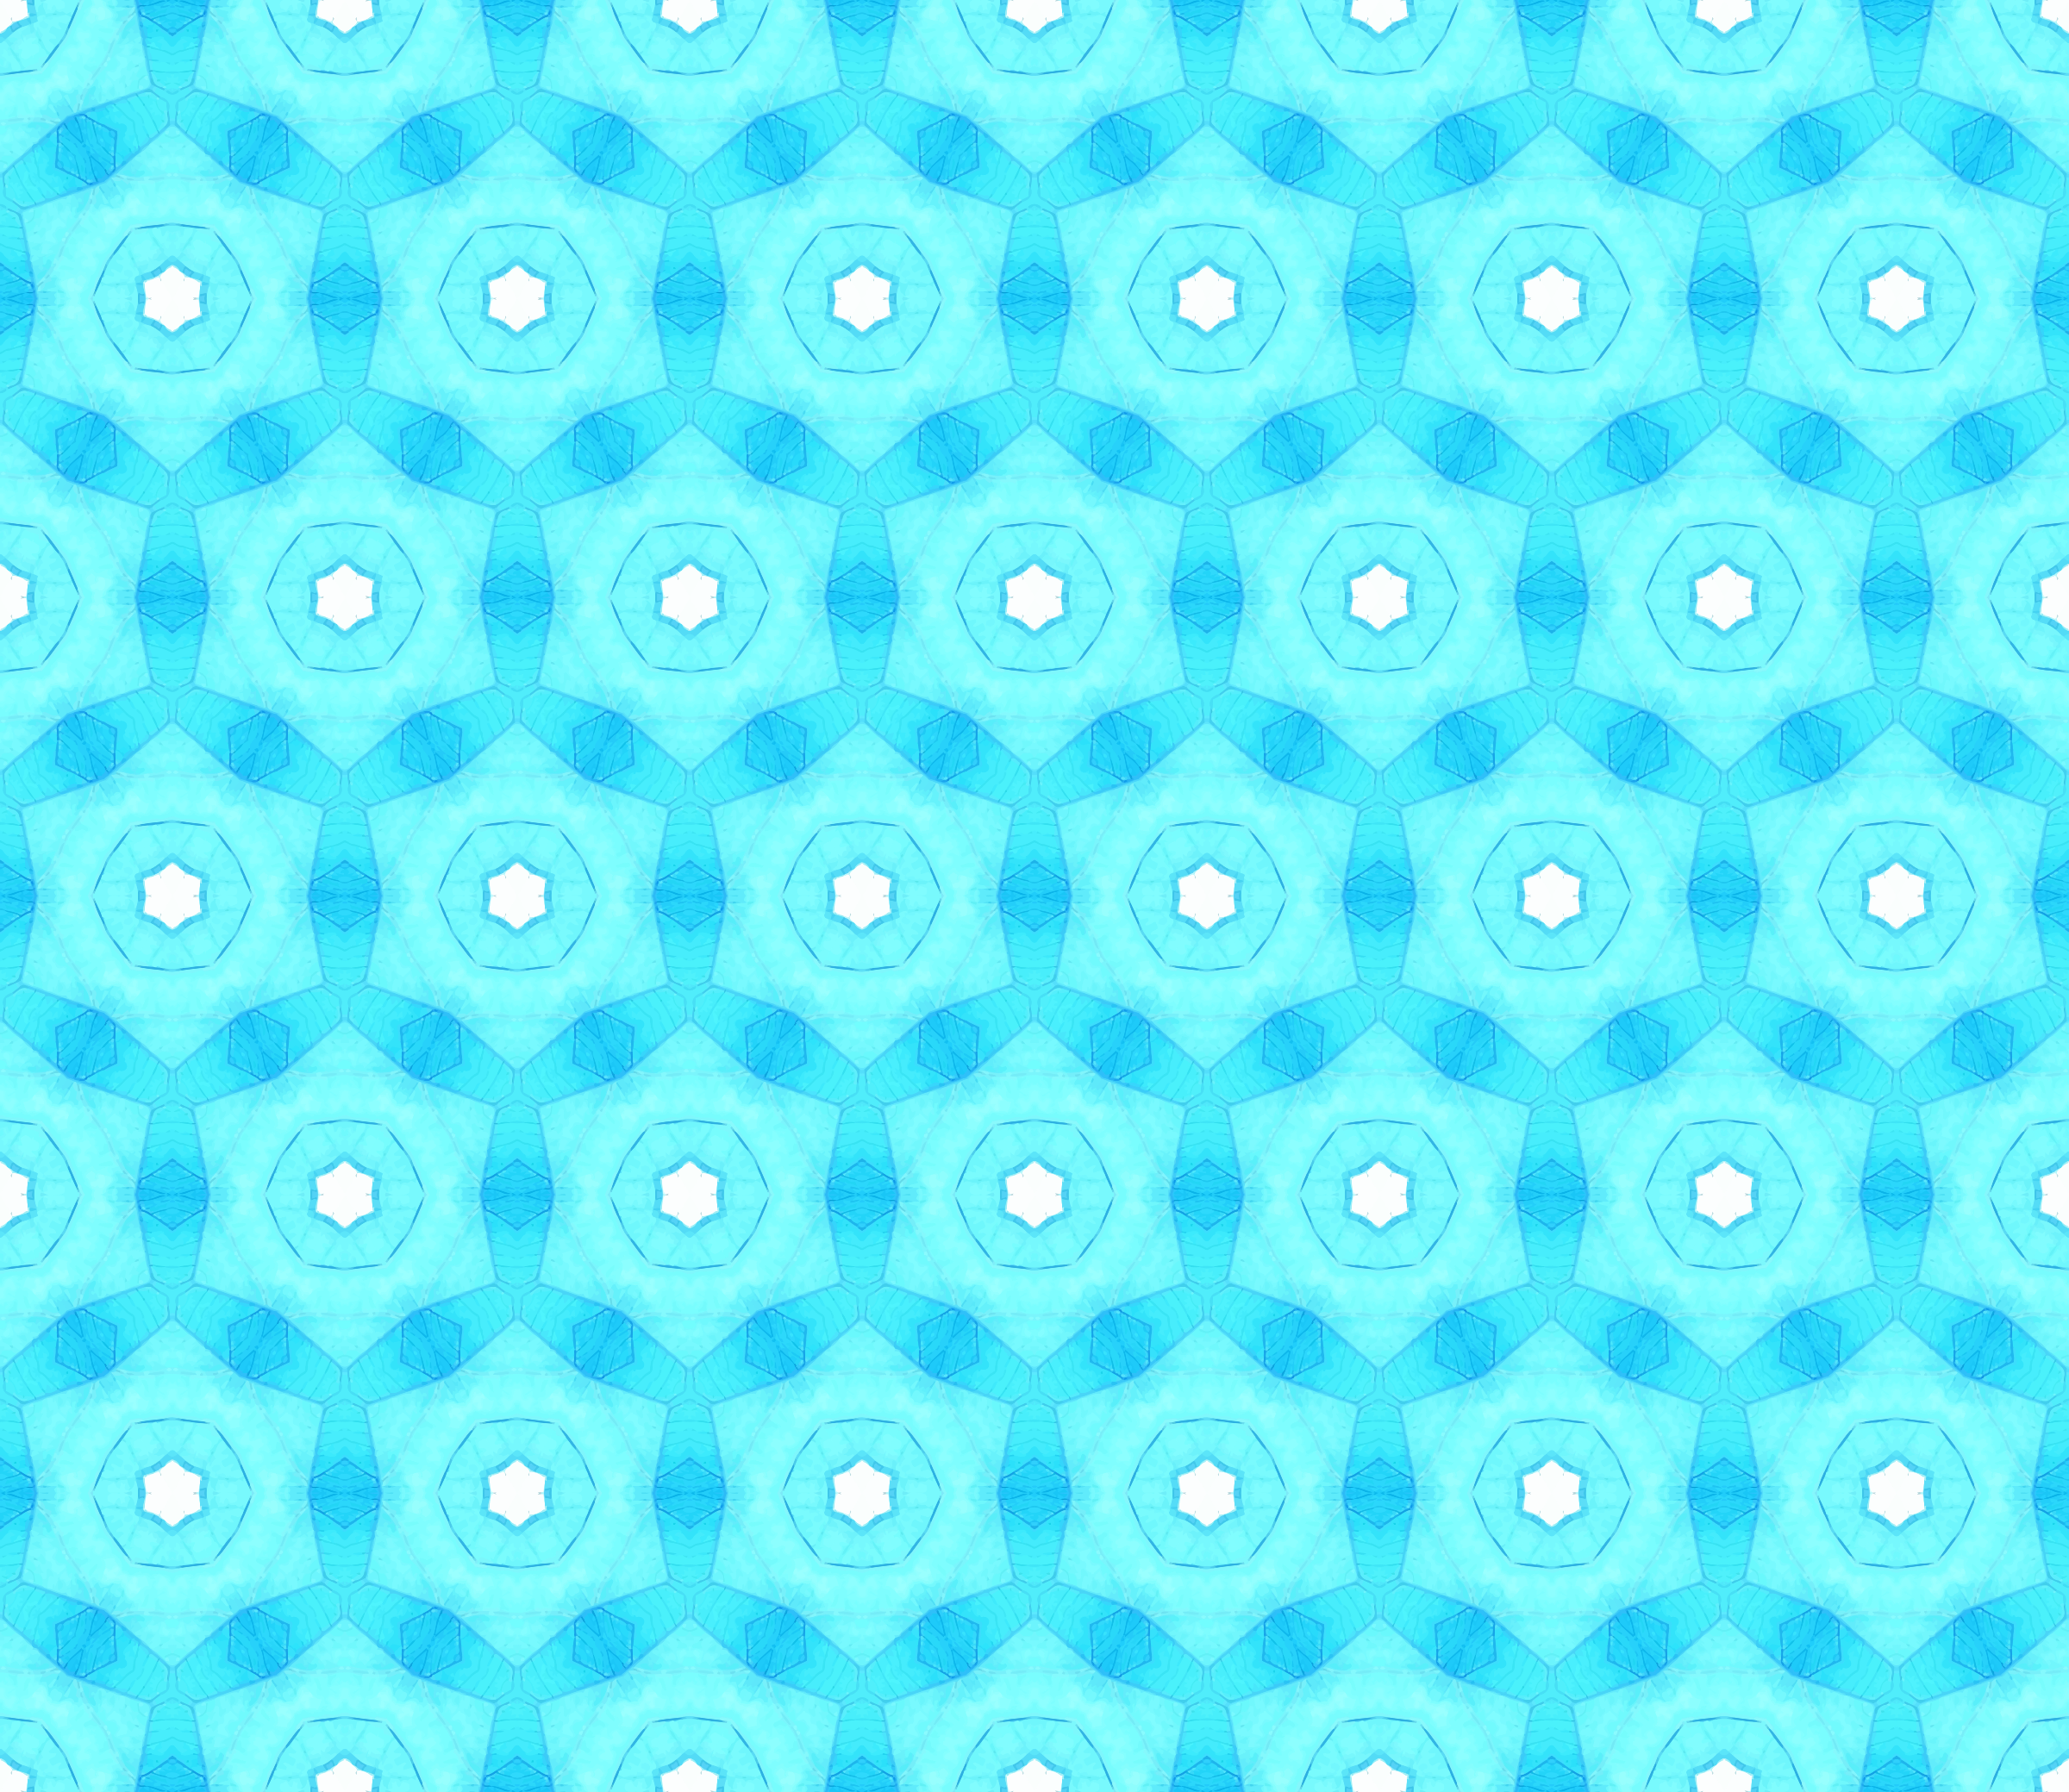 Background pattern 169 (colour 5) by Firkin